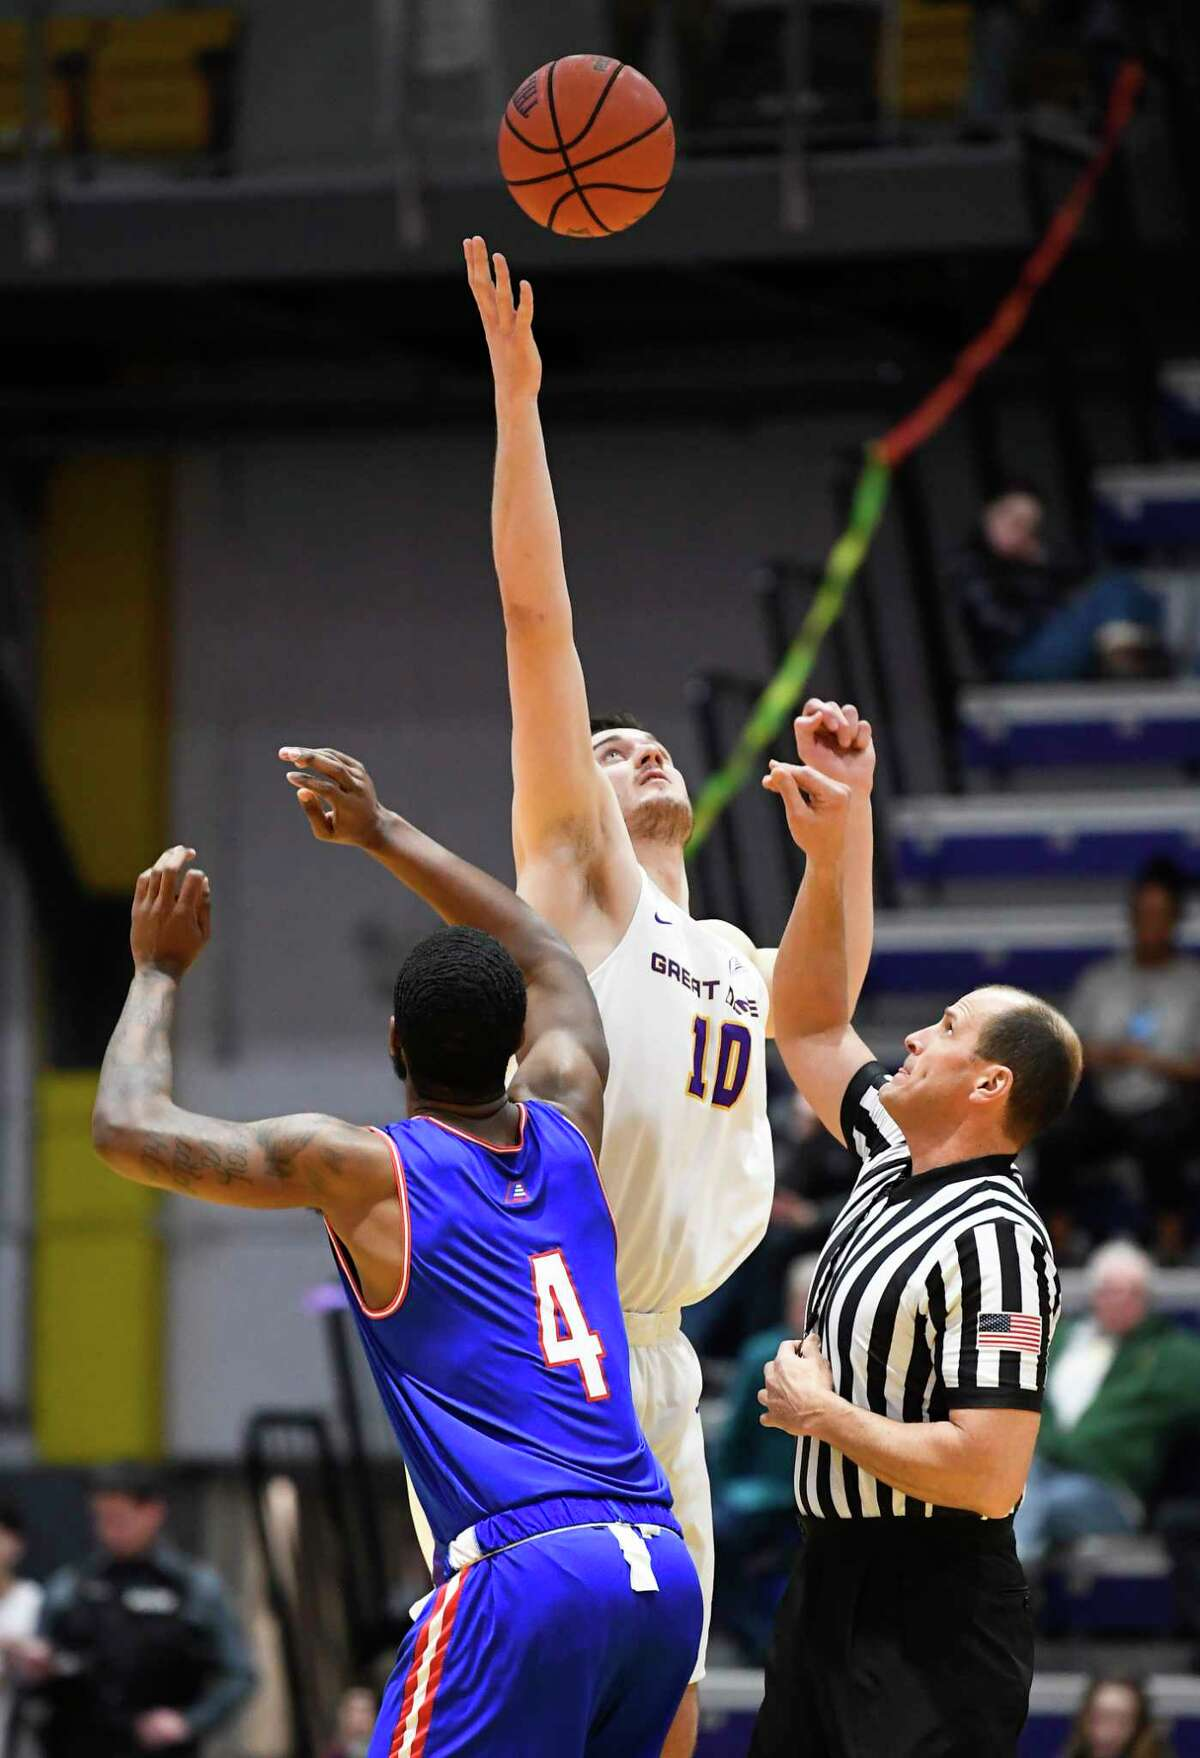 University at Albany forward Brent Hank (10) wins the opening tipoff against University of Massachusetts forward Darius Henderson (4) during the first half of an NCAA men's college basketball game Wednesday, Feb. 13, 2019, in Albany, N.Y. (Hans Pennink / Special to the Times Union)